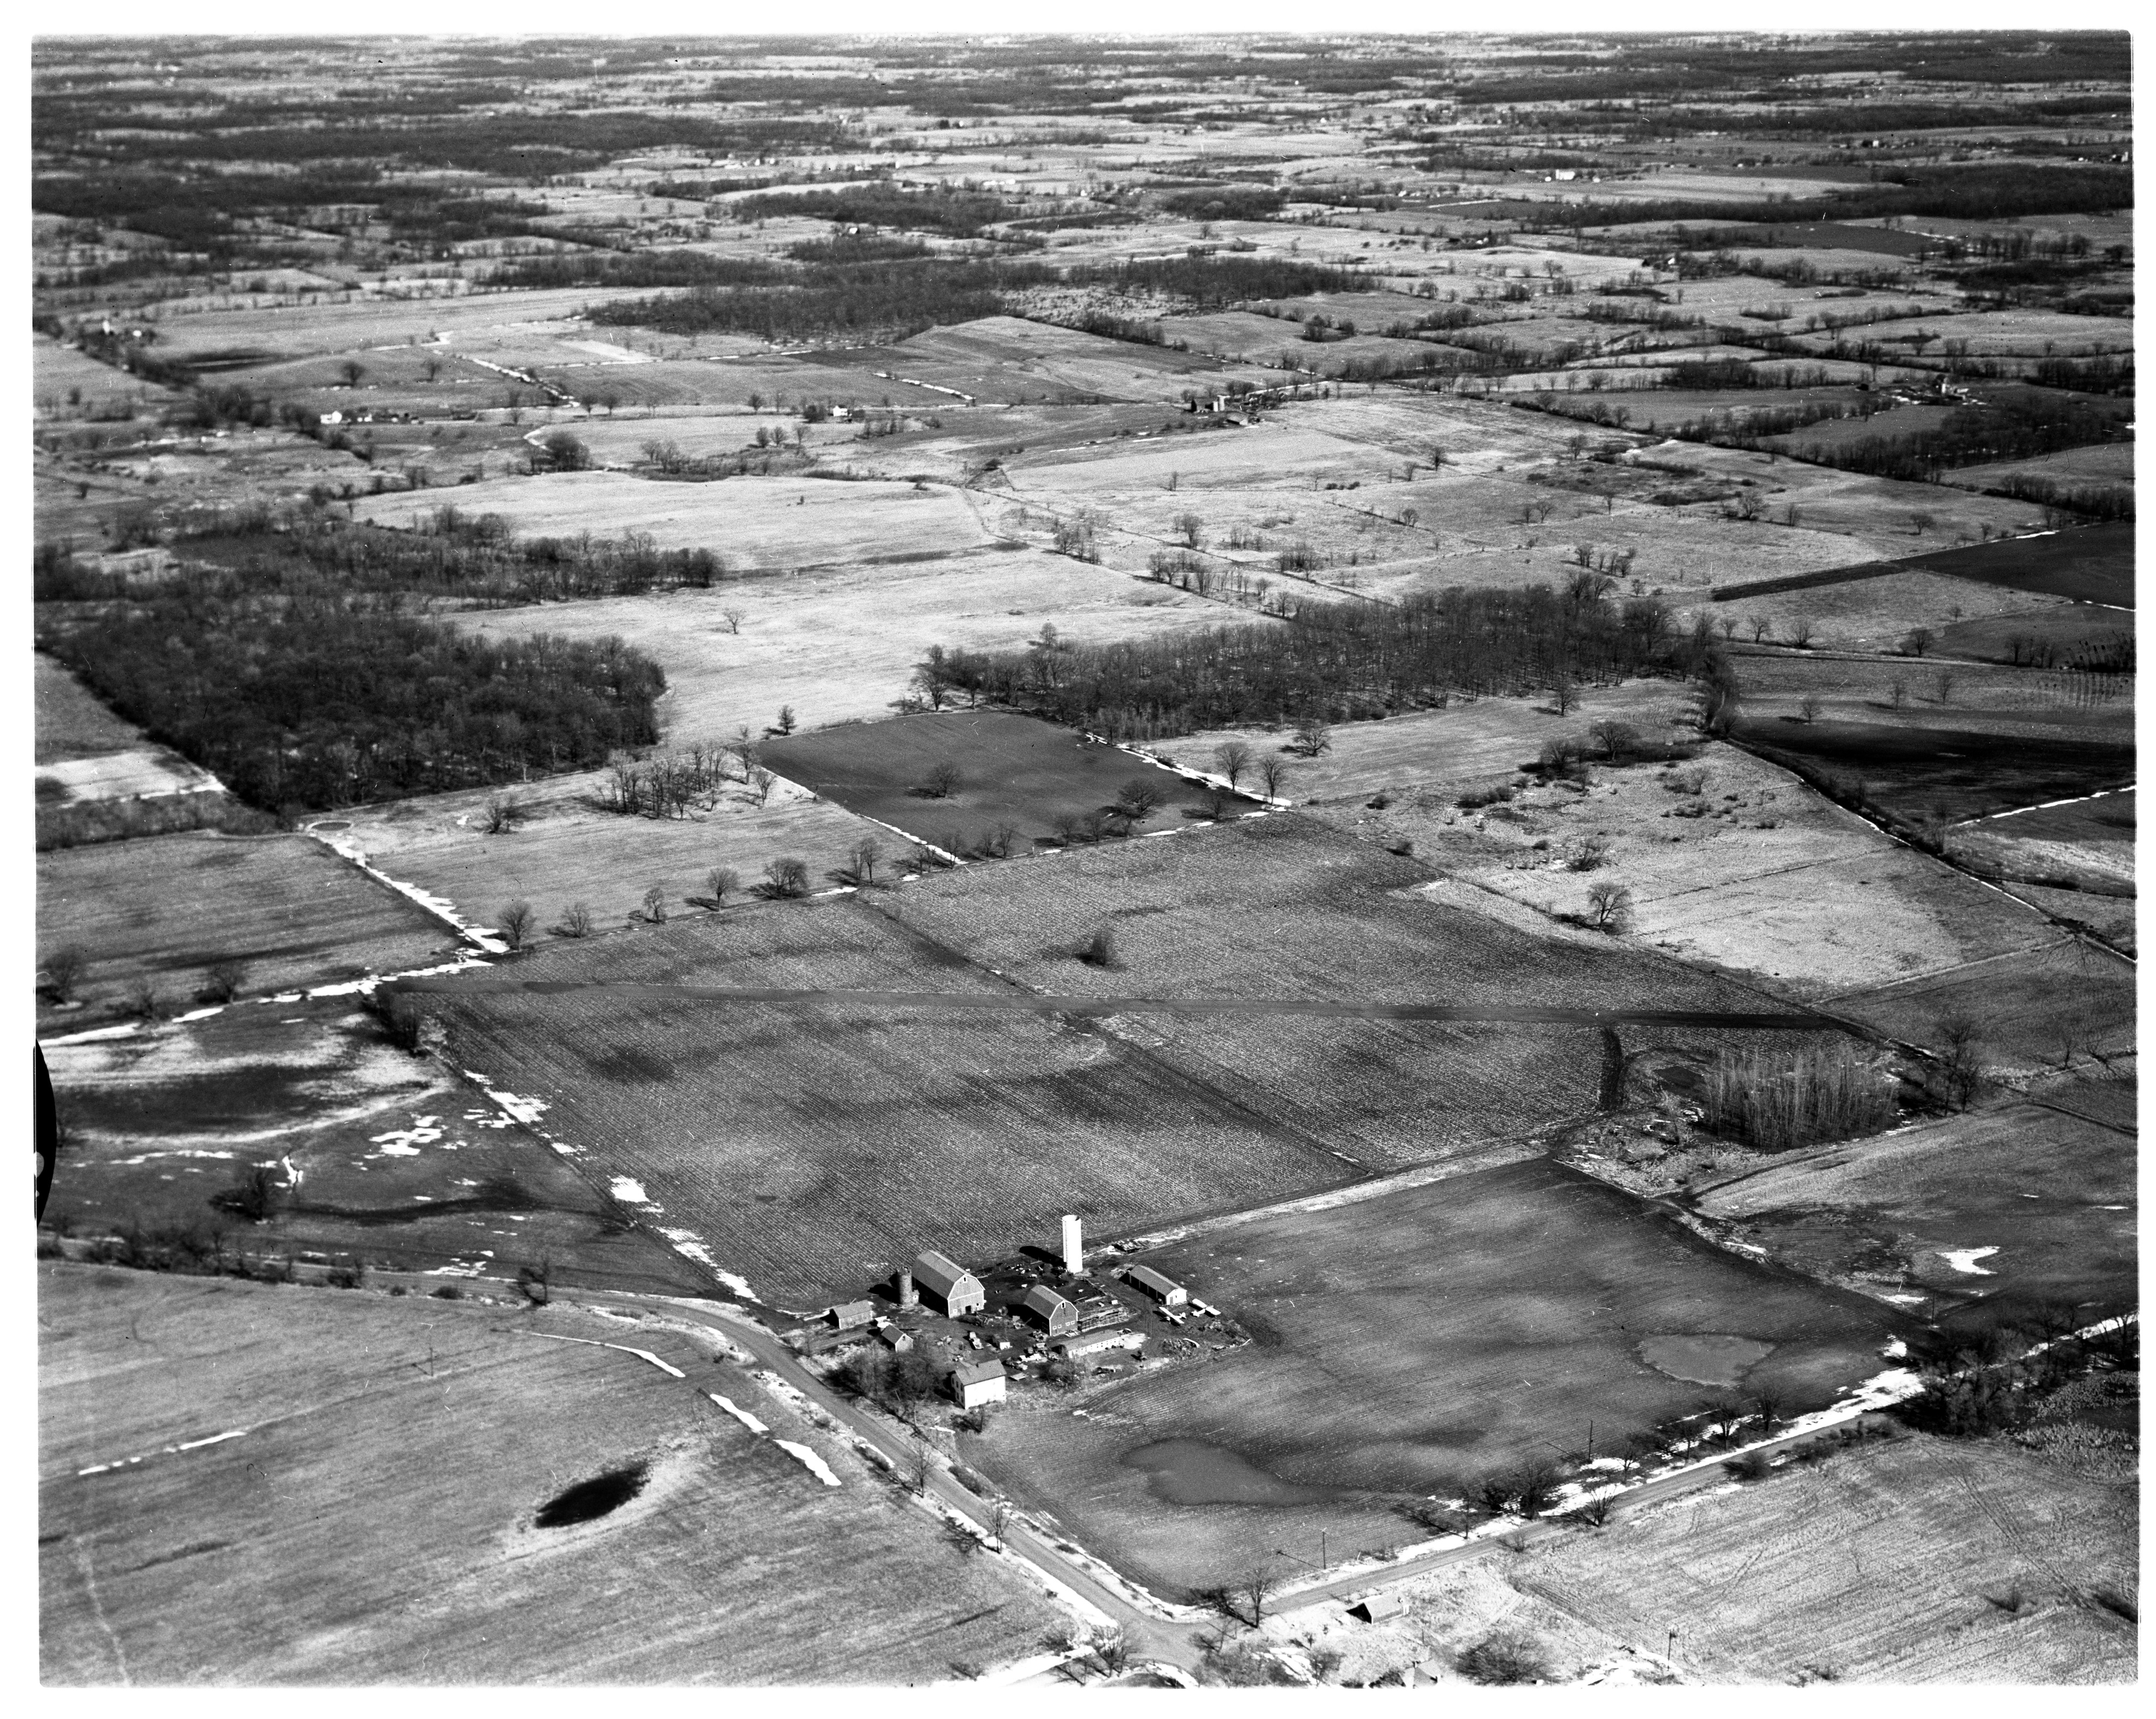 Aerial Photograph of Northfield Township Airstrip on the Nollar Farm, March 1958 image